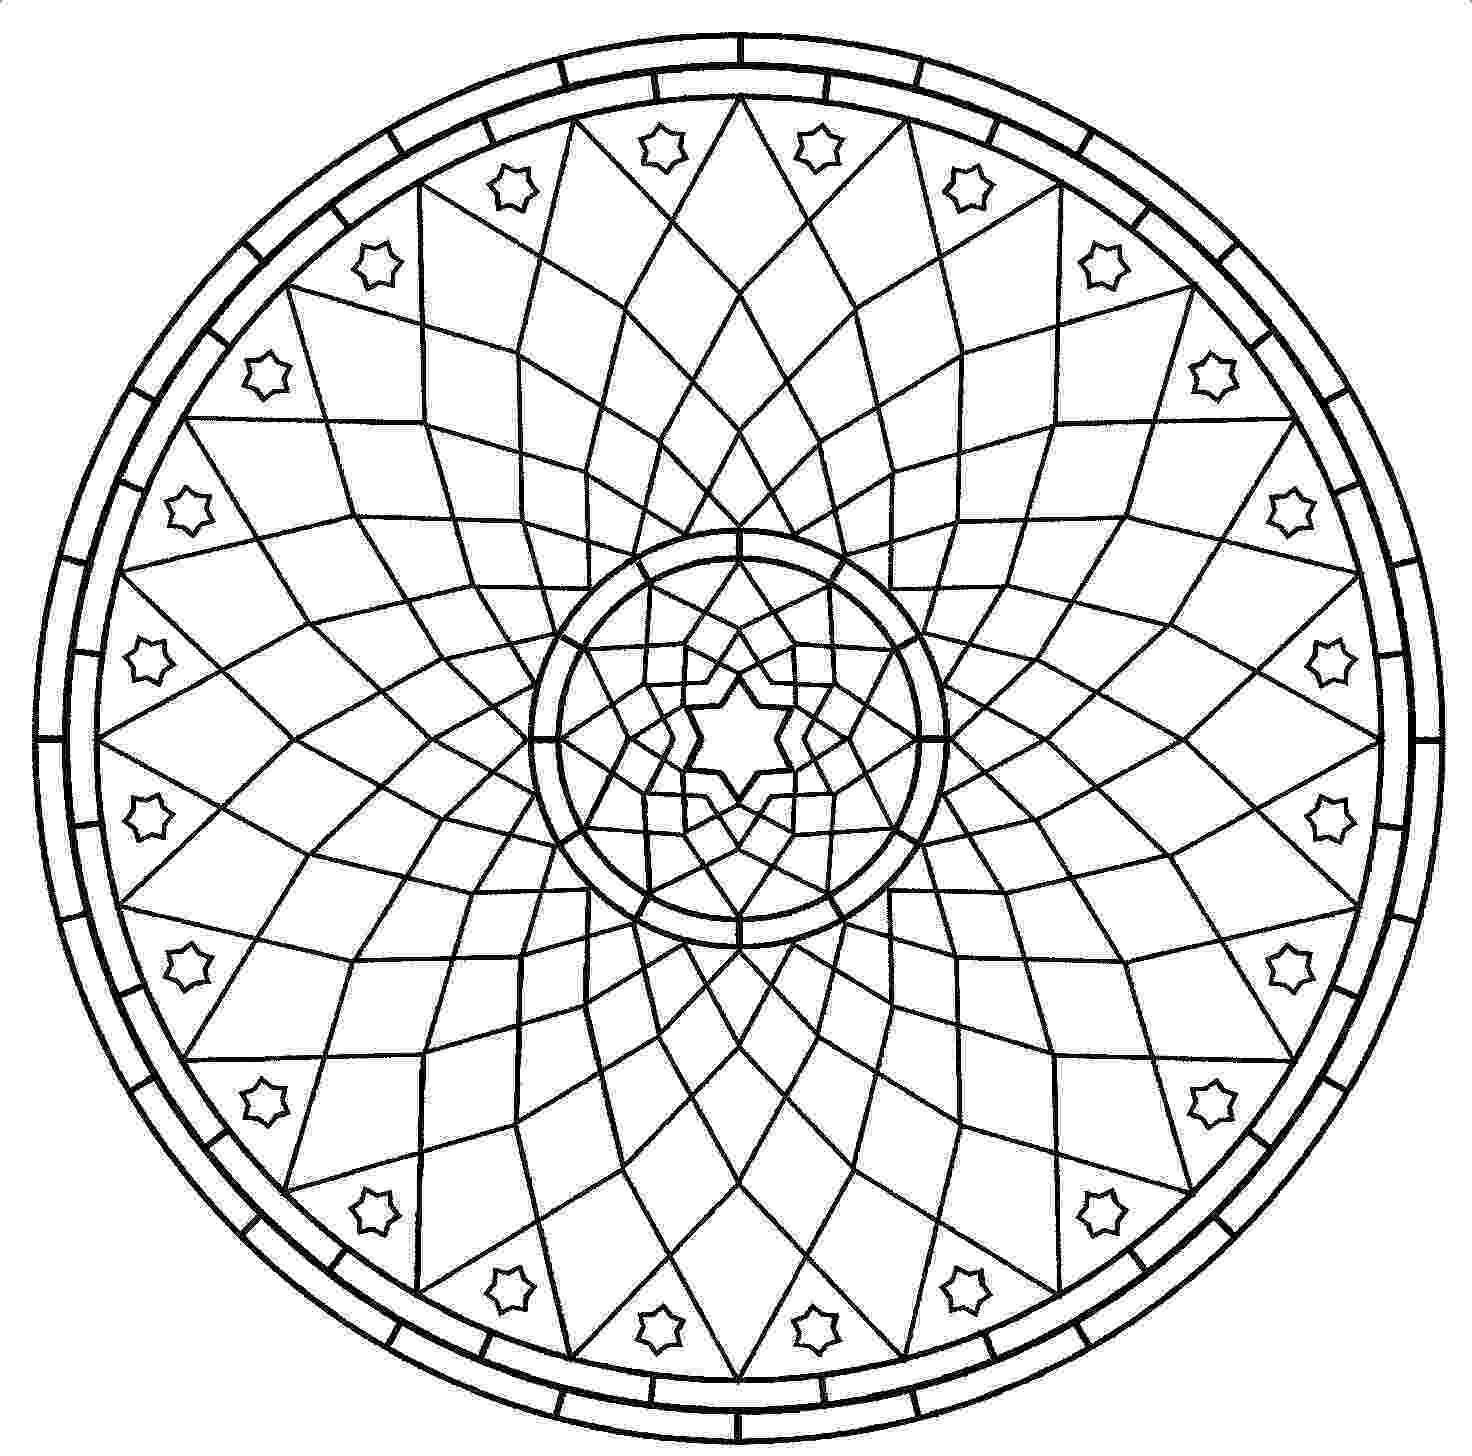 mandala to color mandala coloring pages for kids parenting times mandala to color